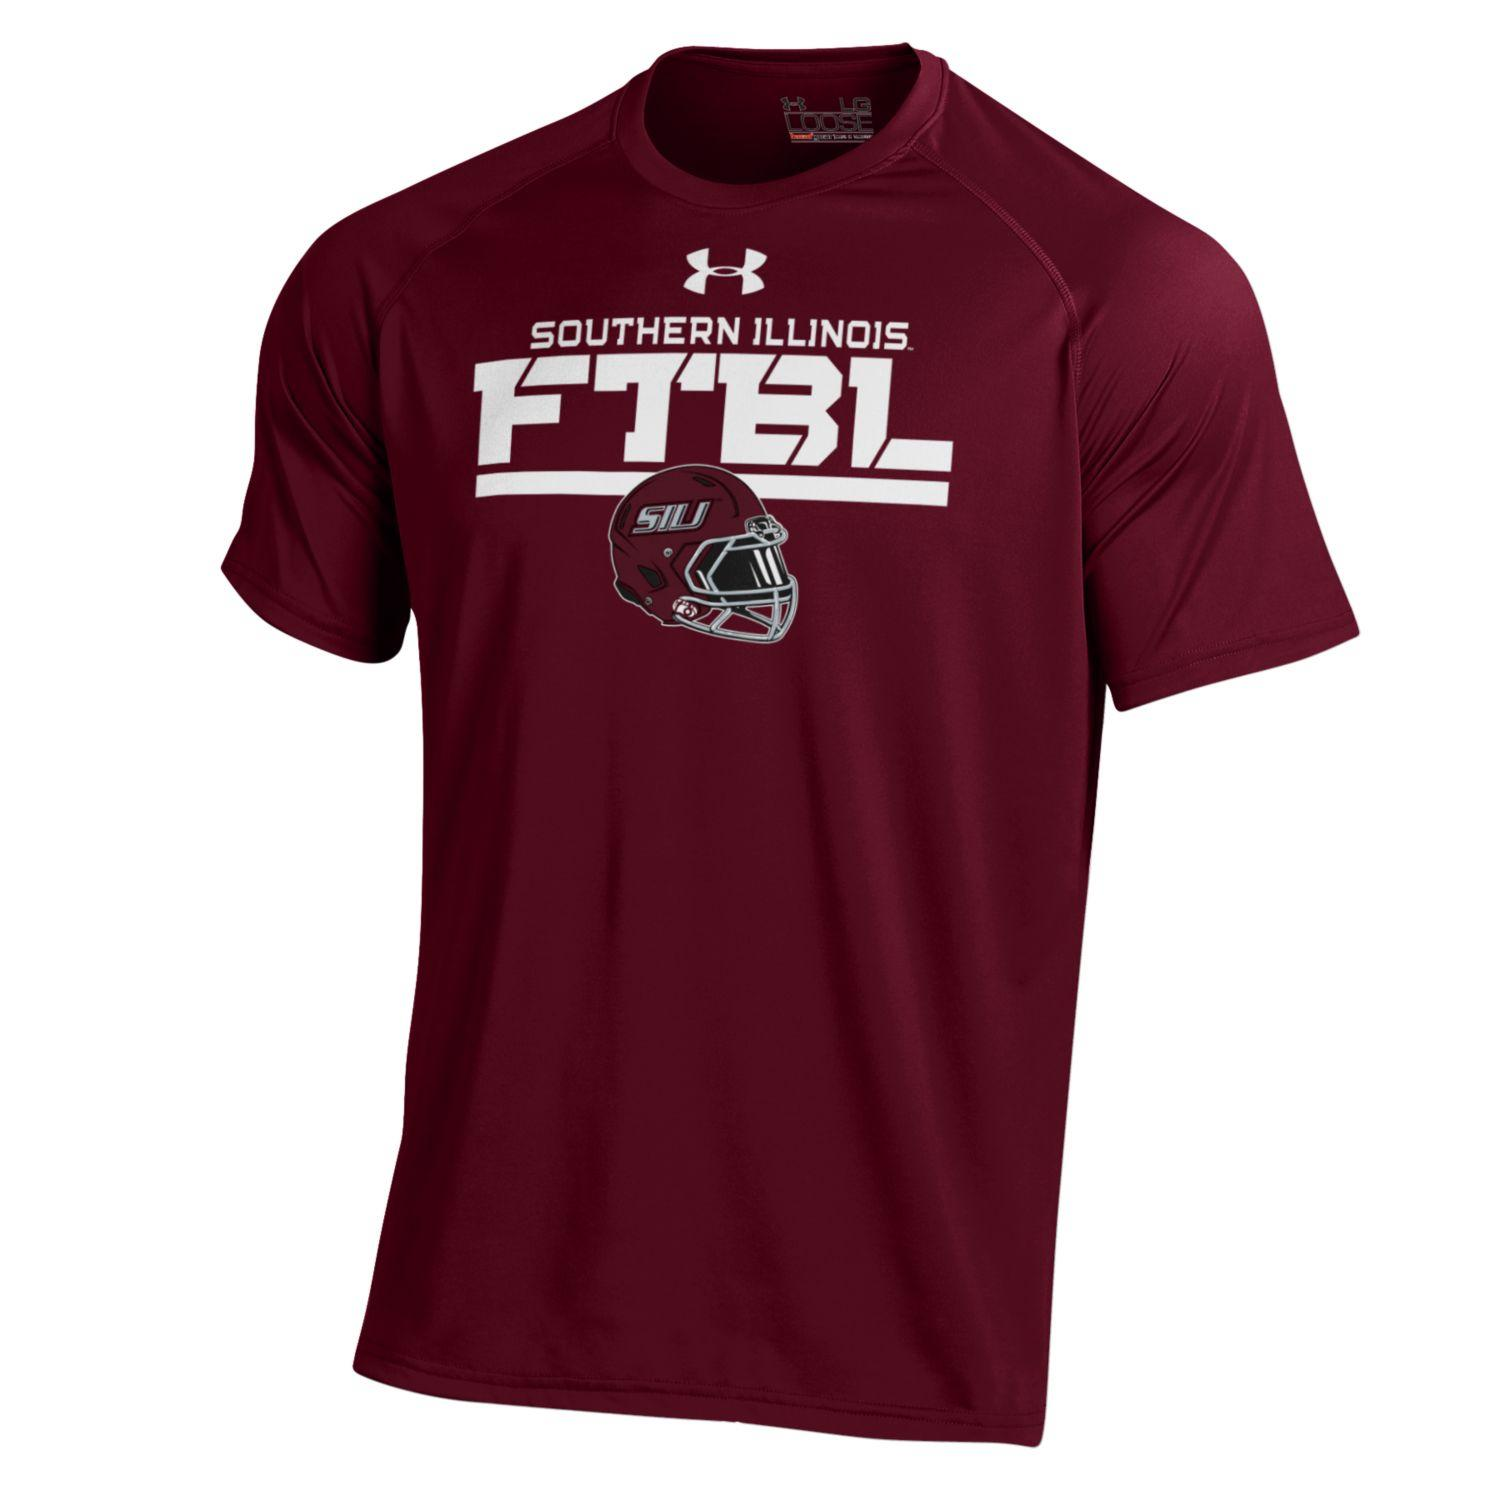 Image for the UNDER ARMOUR® SOUTHERN ILLINOIS FOOTBALL T-SHIRT product